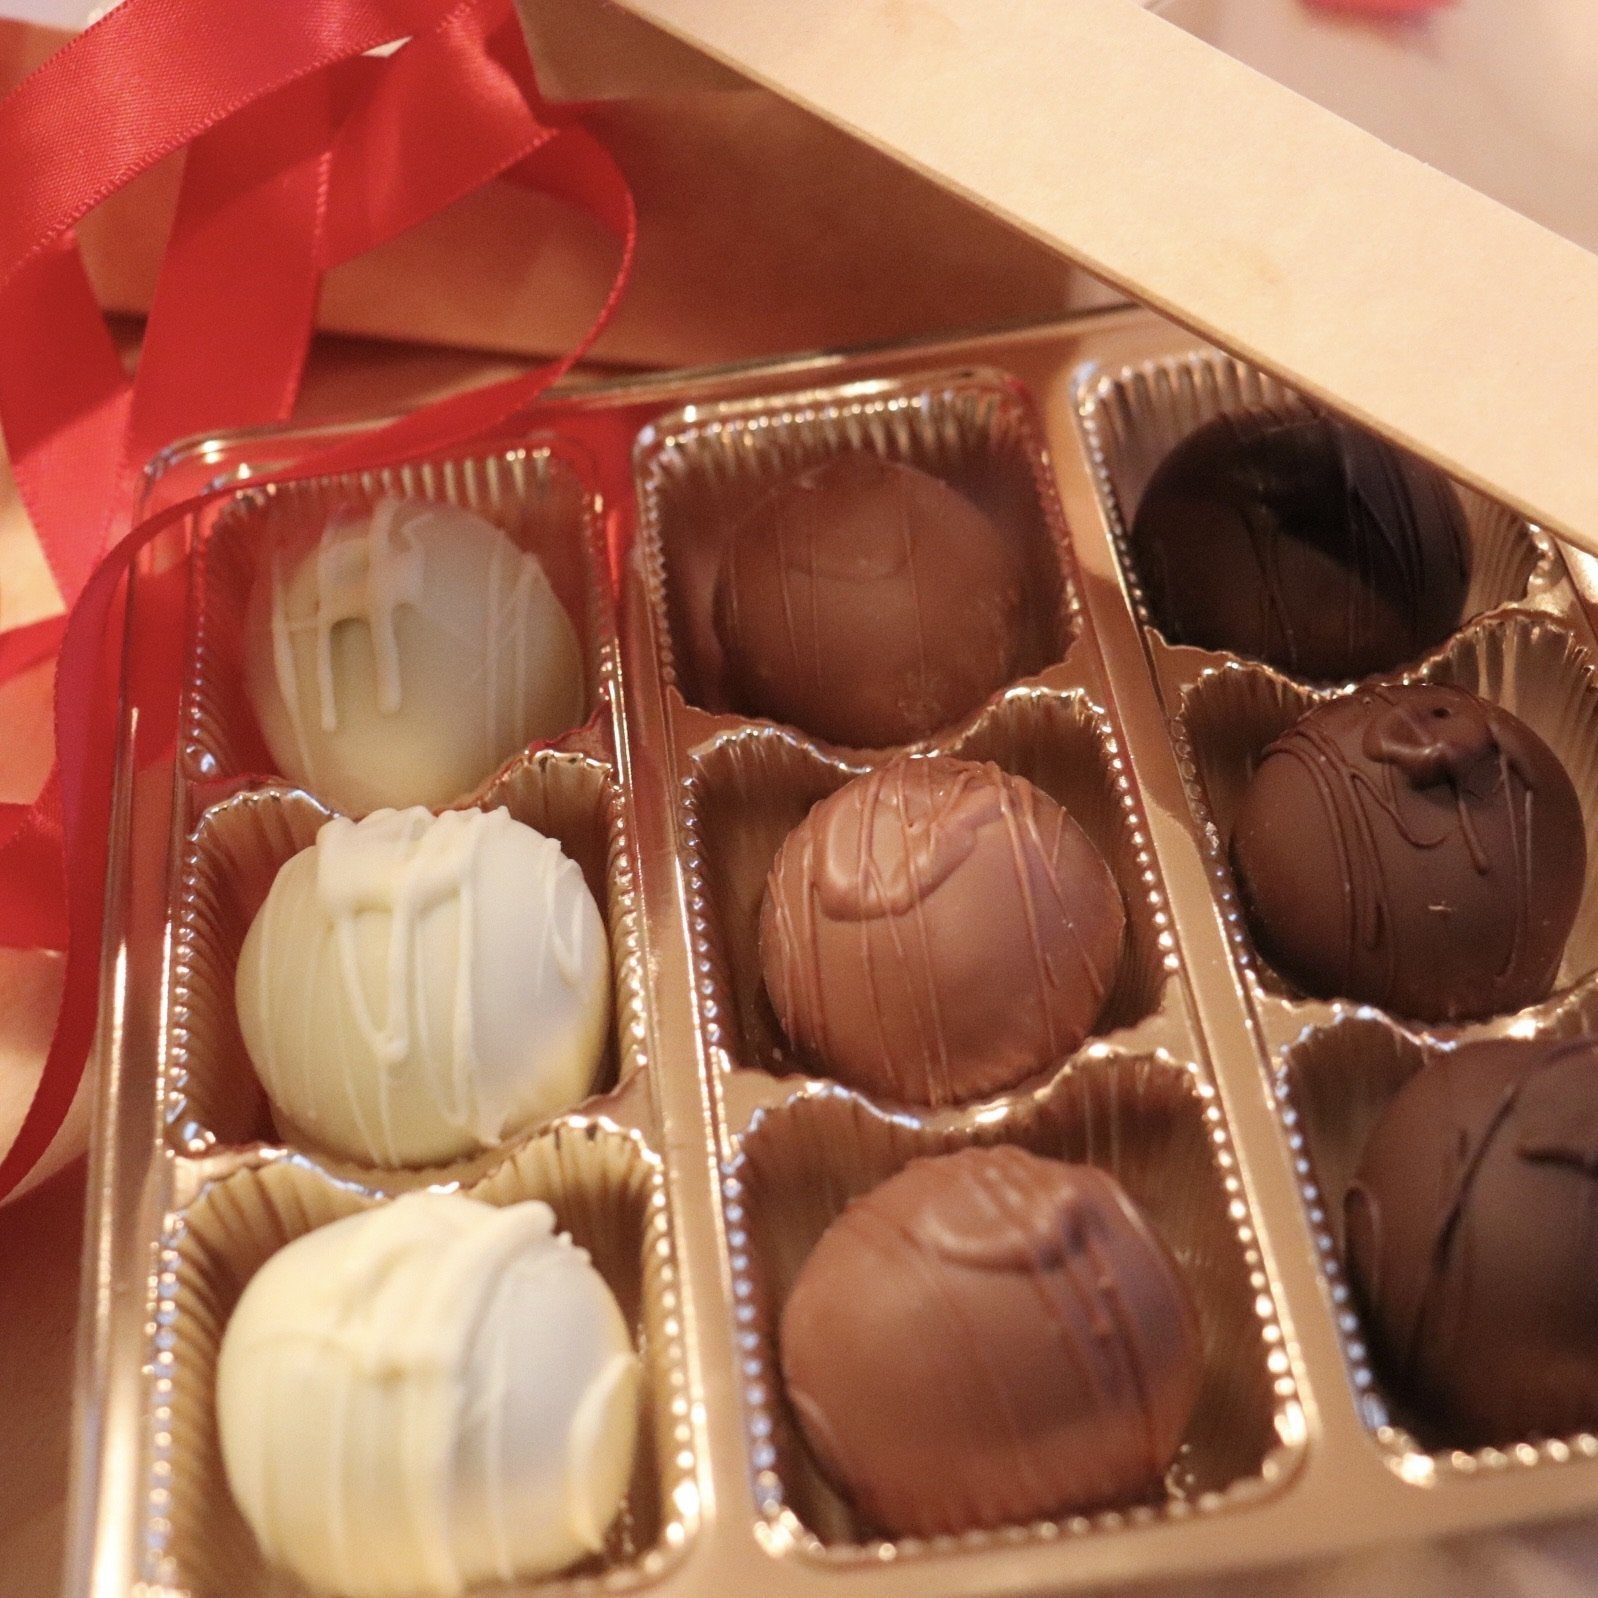 New Chocolate Lovers Truffle Box Evelyn R. Cooke - The #EvCooks Store